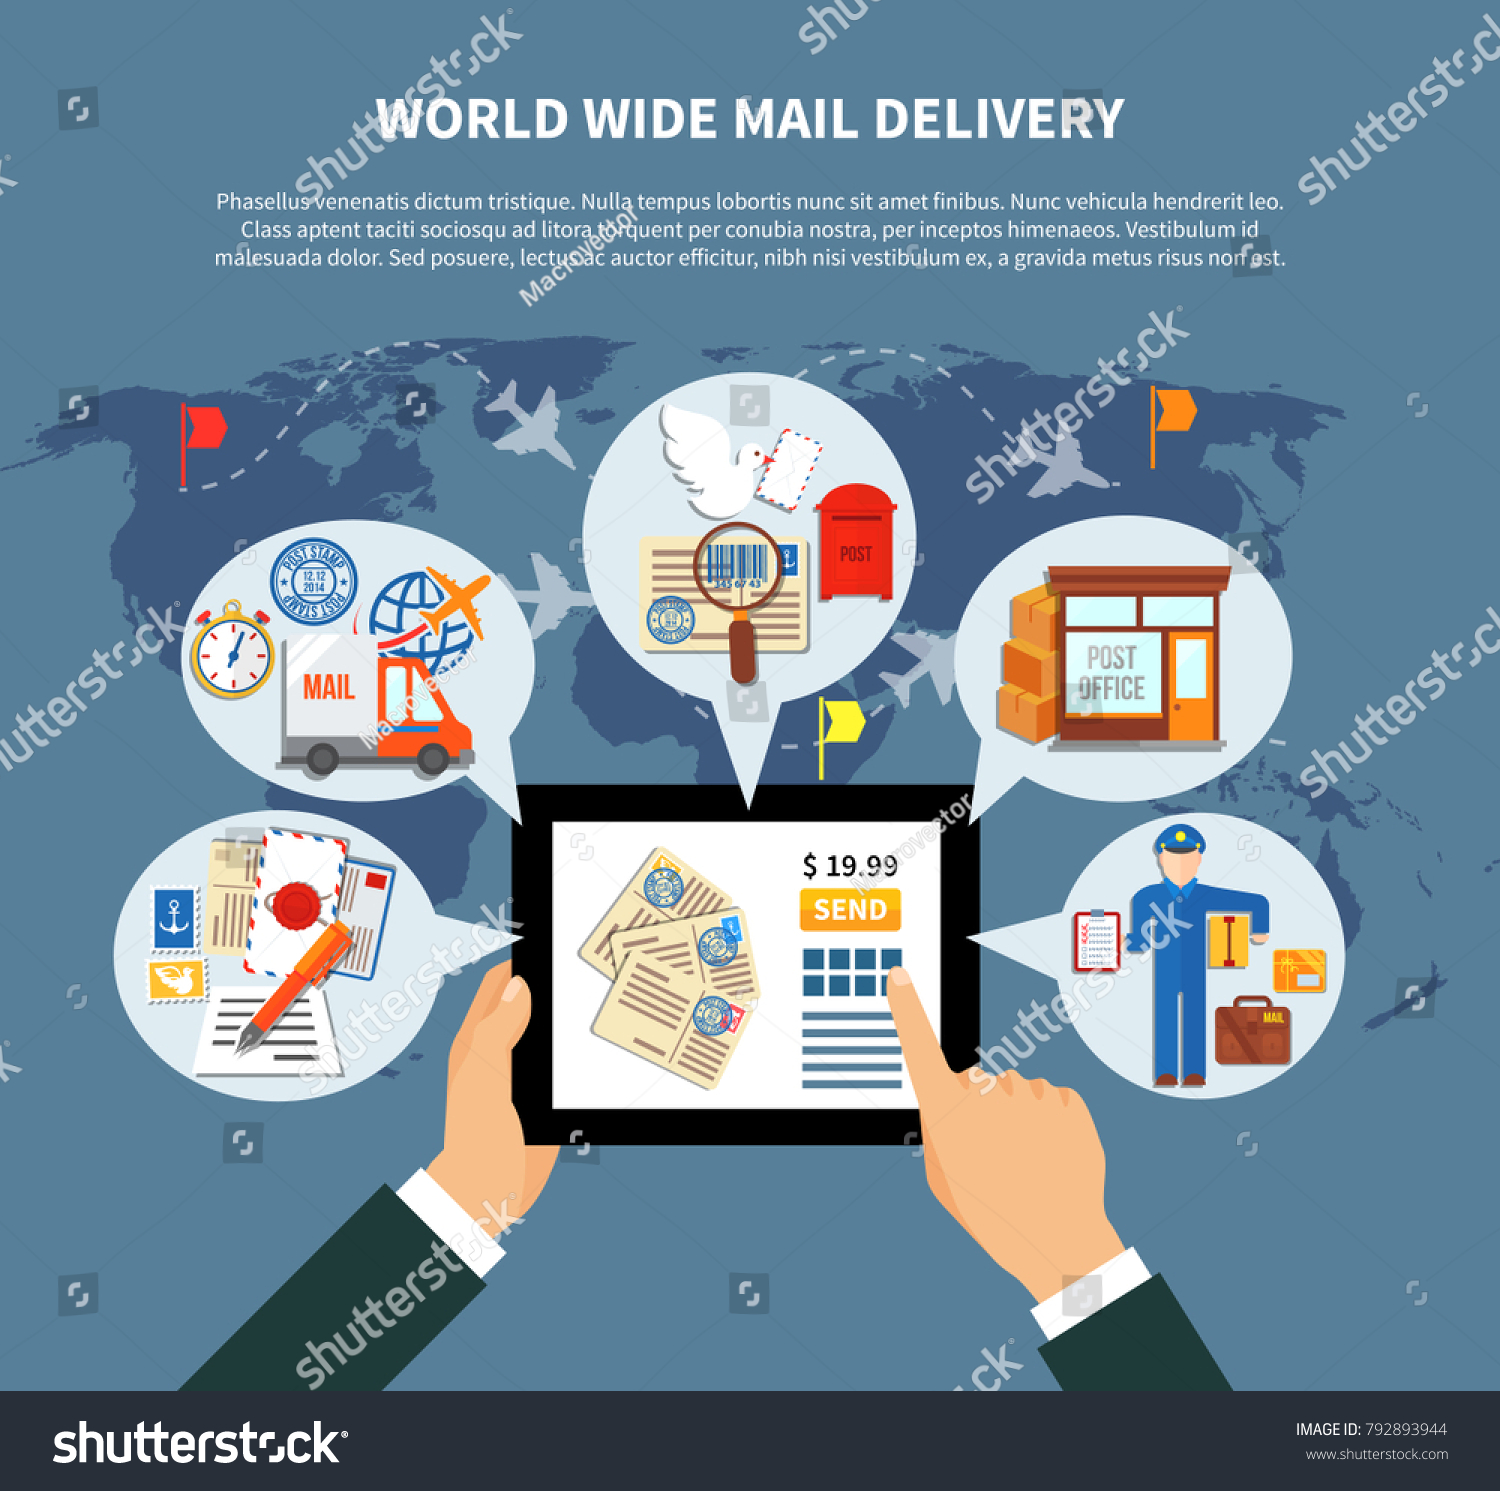 Postal services online design clouds icons stock illustration postal services online design with clouds and icons around mobile device and hands world map illustration gumiabroncs Gallery